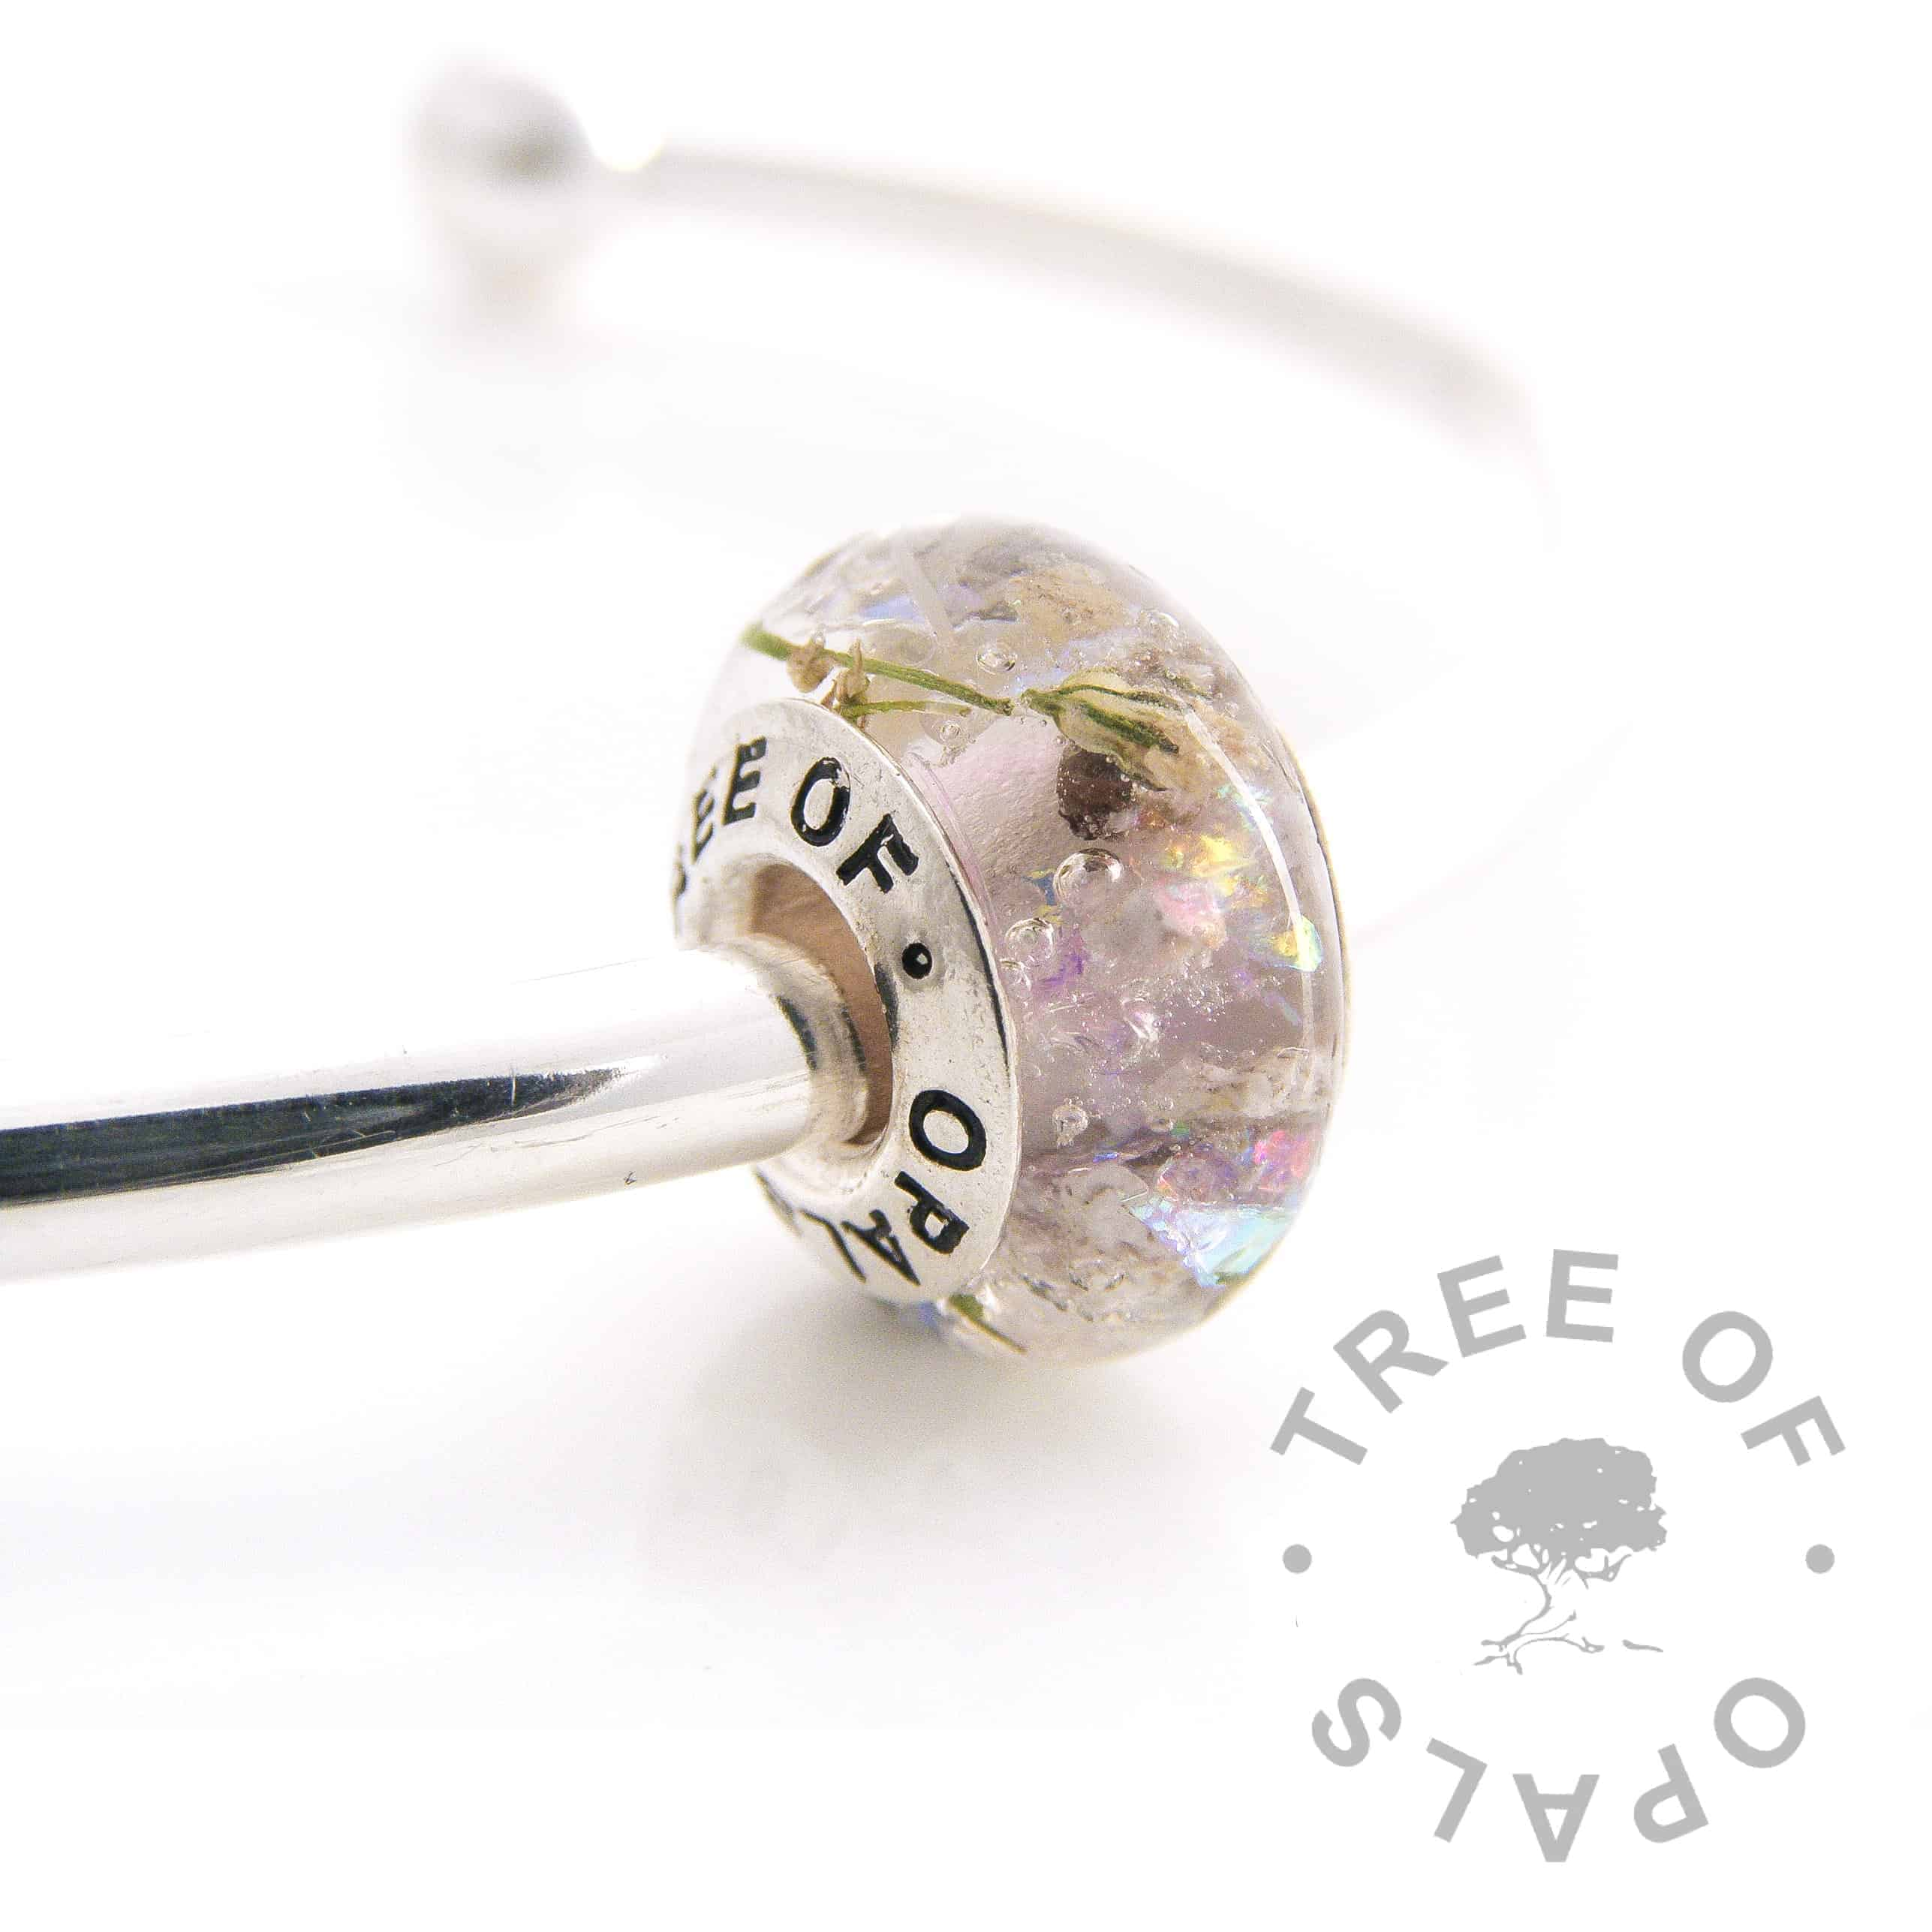 cremation ashes and flower charm trio with purple opalescent flakes, gypsophelia and sapphire September birthstone with cremation ash. Solid sterling silver signature Tree of Opals core